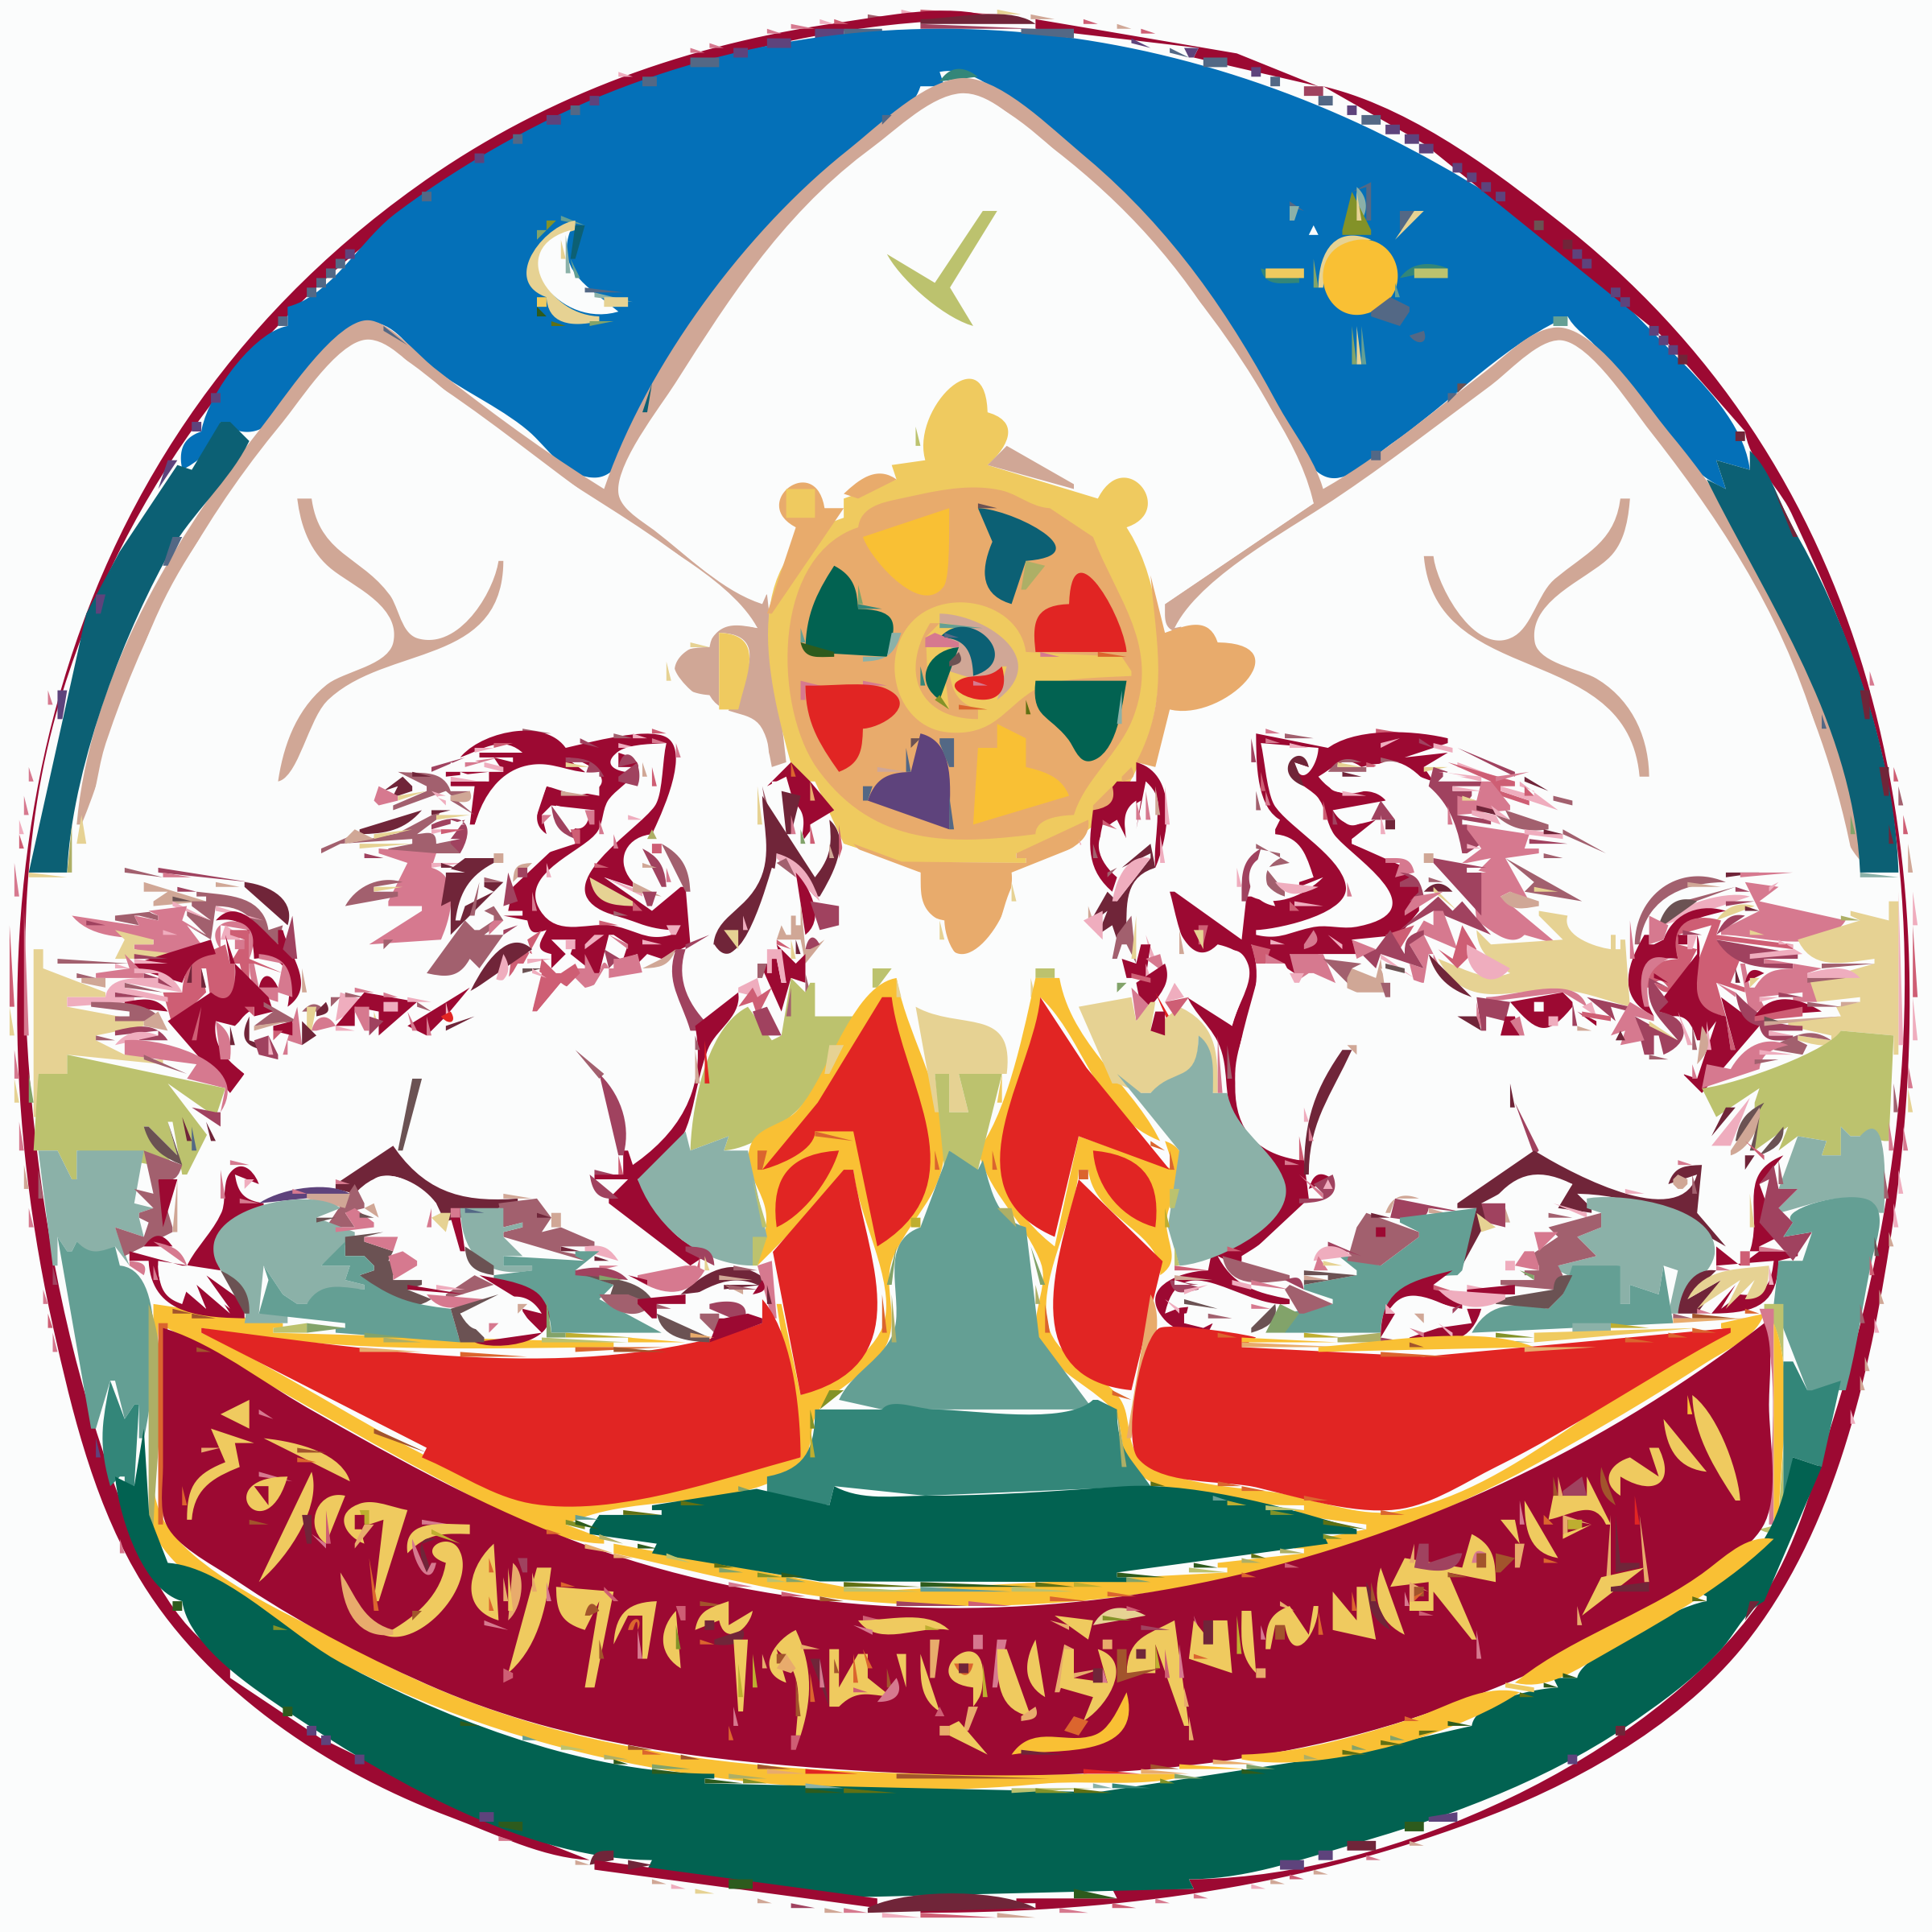 Coat of Arms of Tibet by Tibet